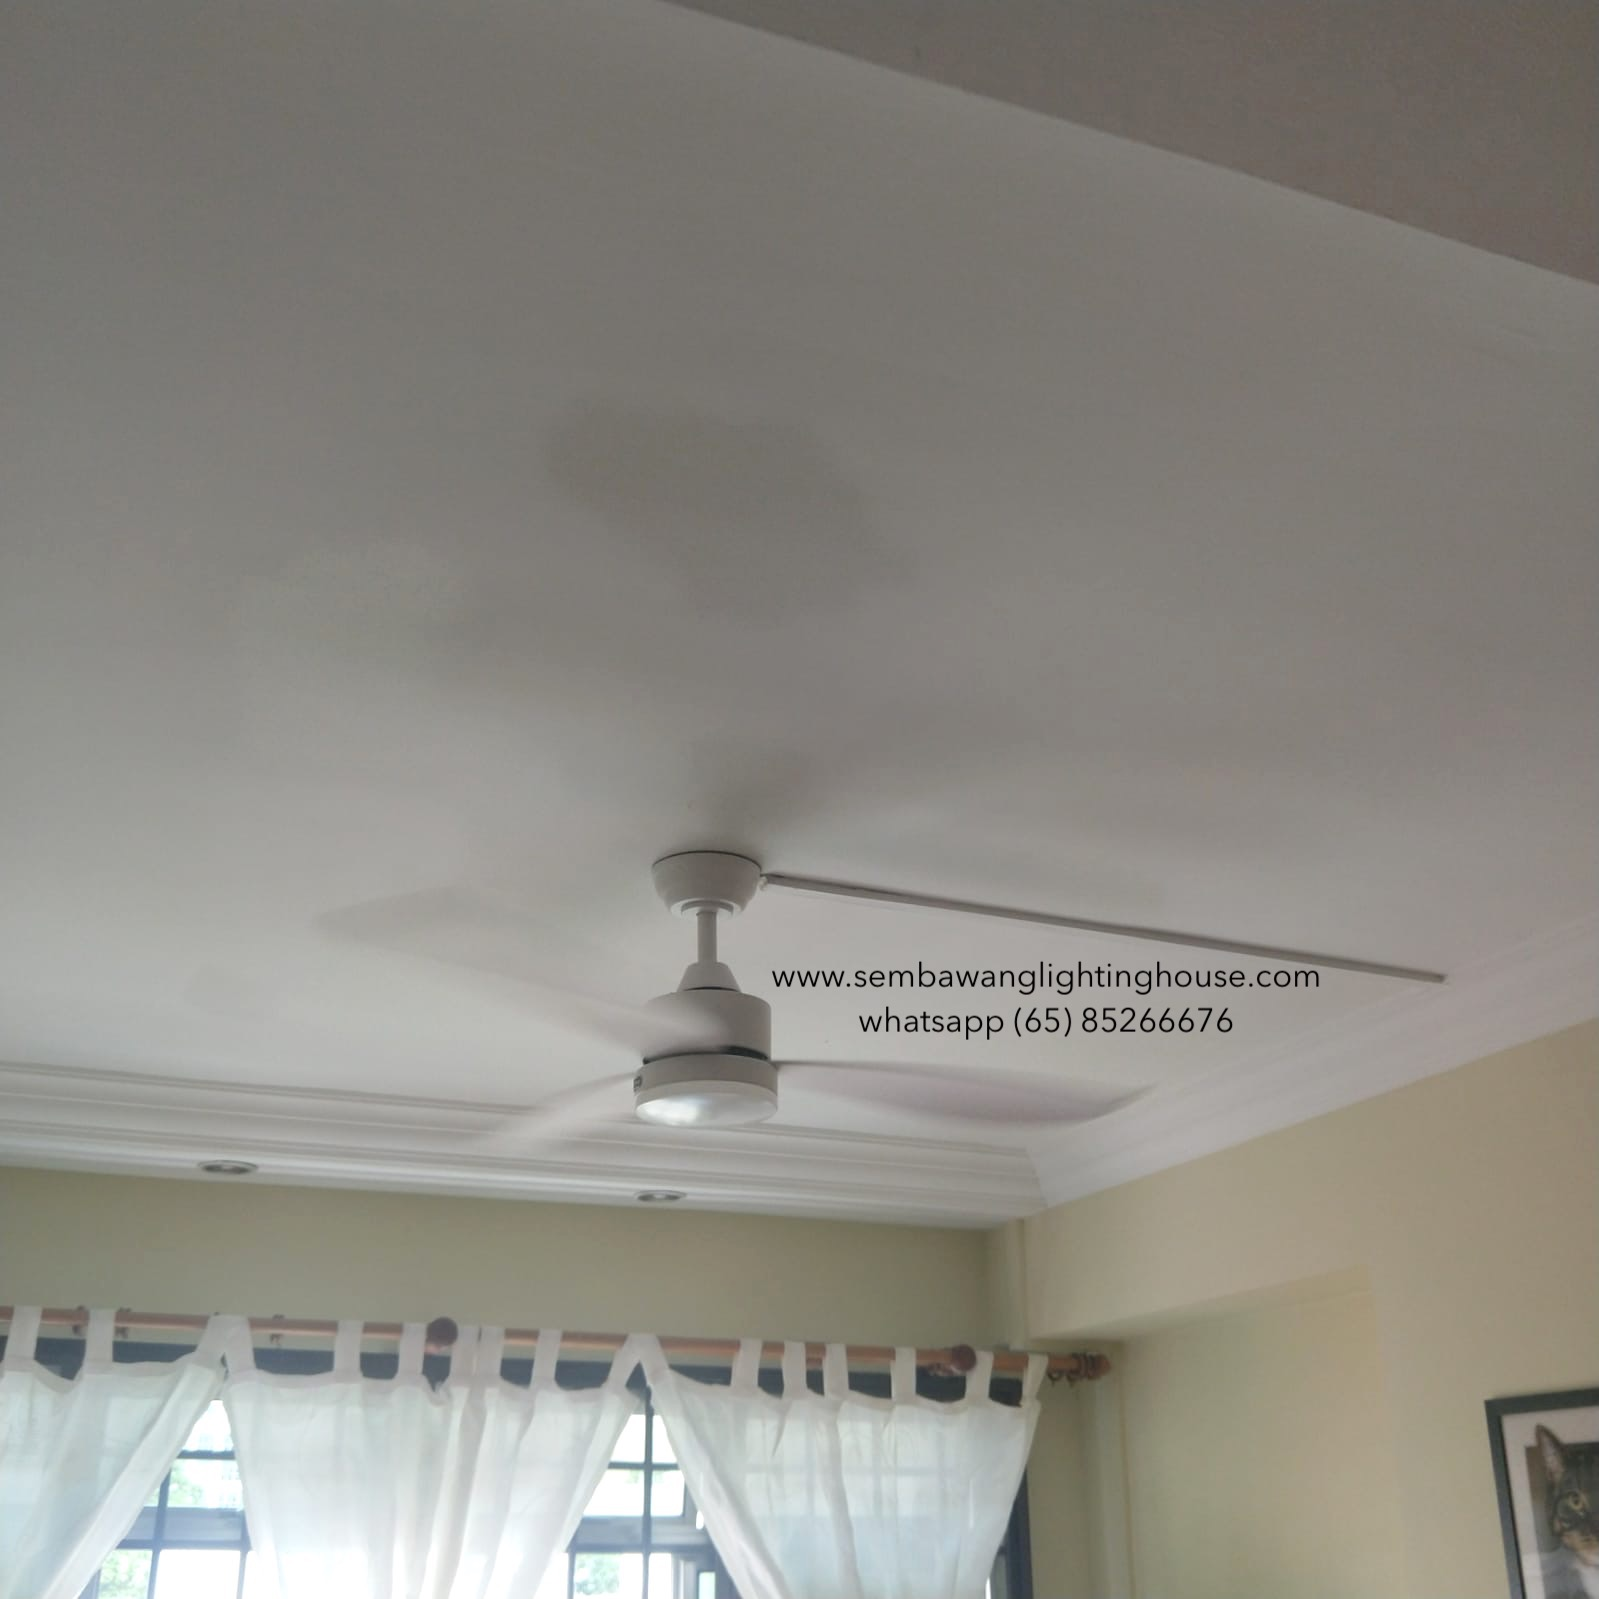 bestar-razor-white-ceiling-fan-sembawang-lighting-house-10.jpg